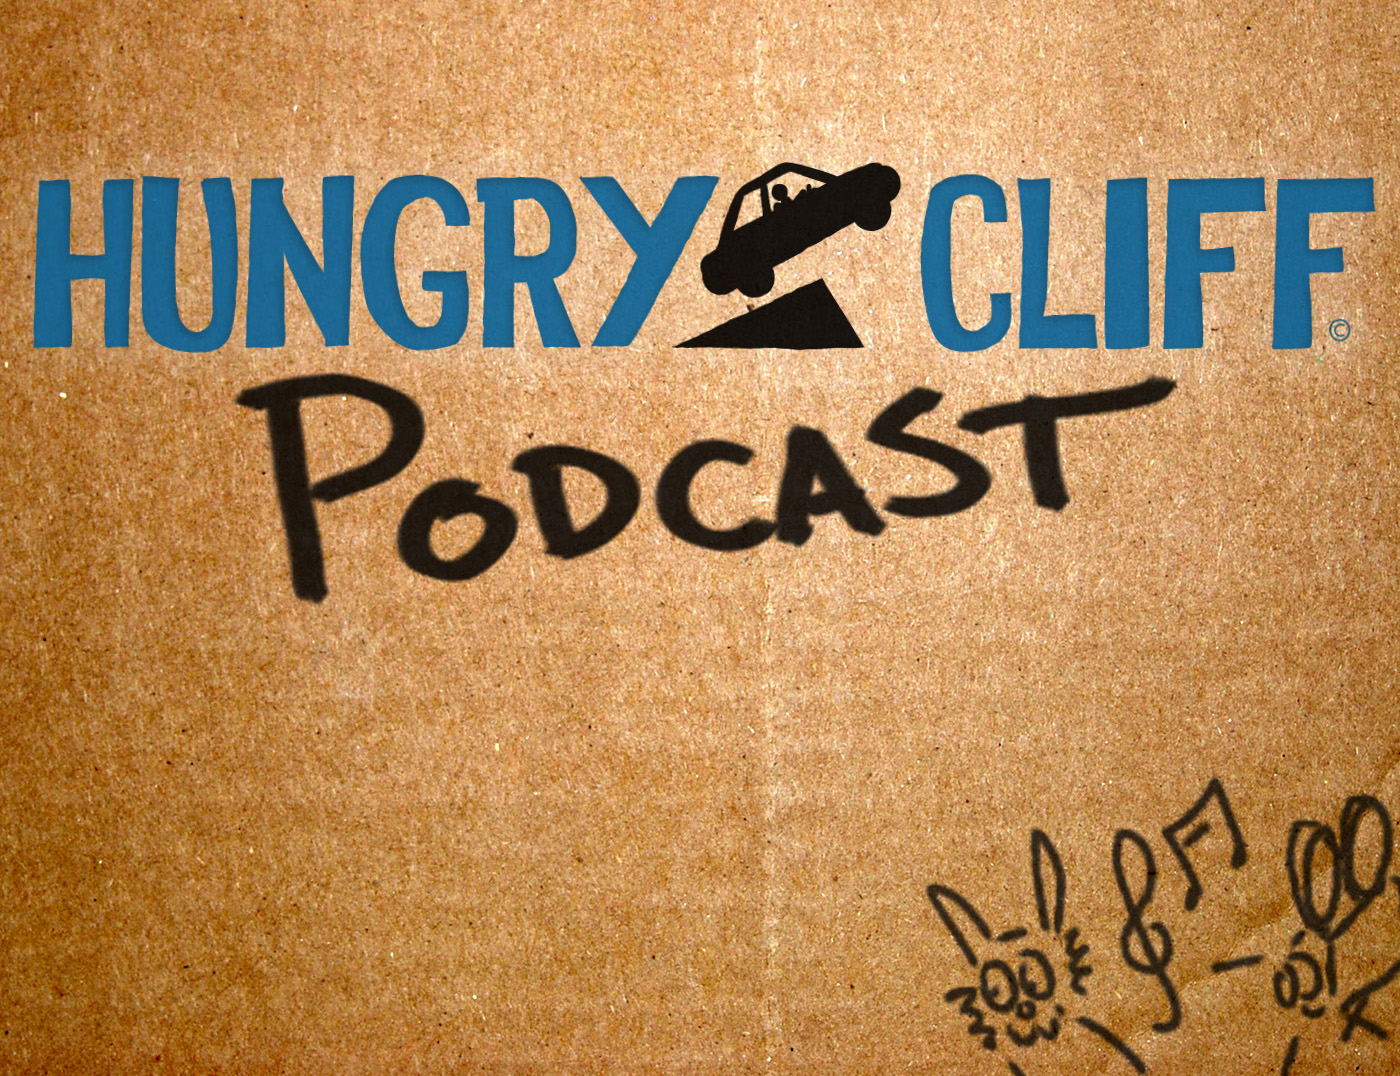 Hungry Cliff Podcast Logo 06 short top